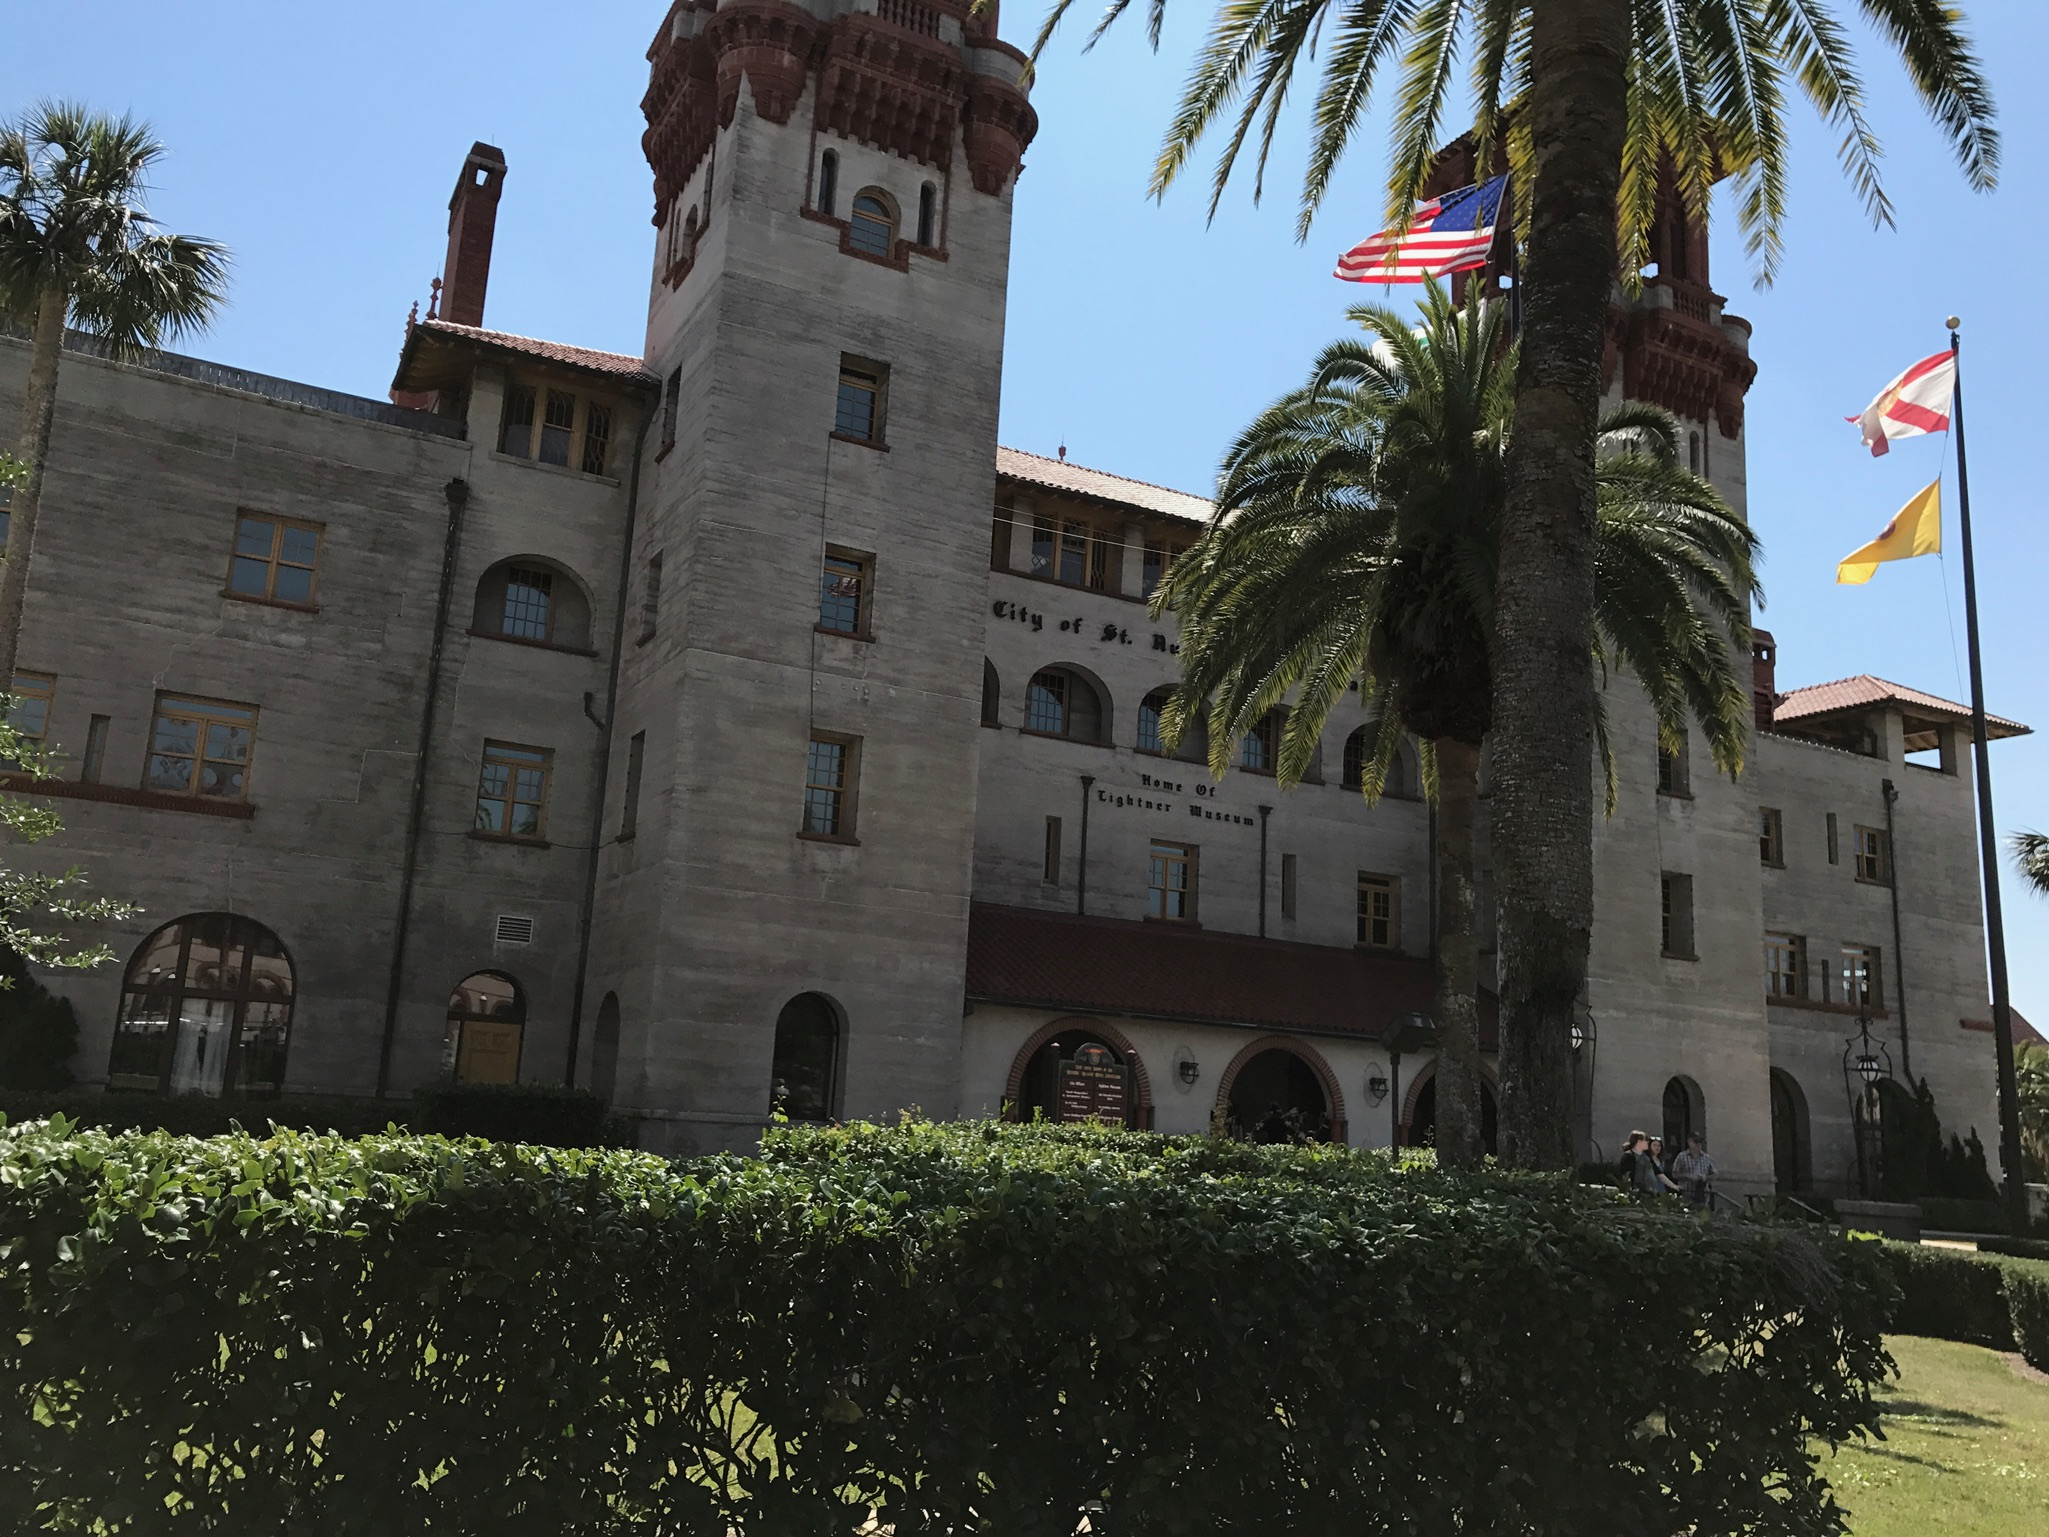 The Lightner Museum